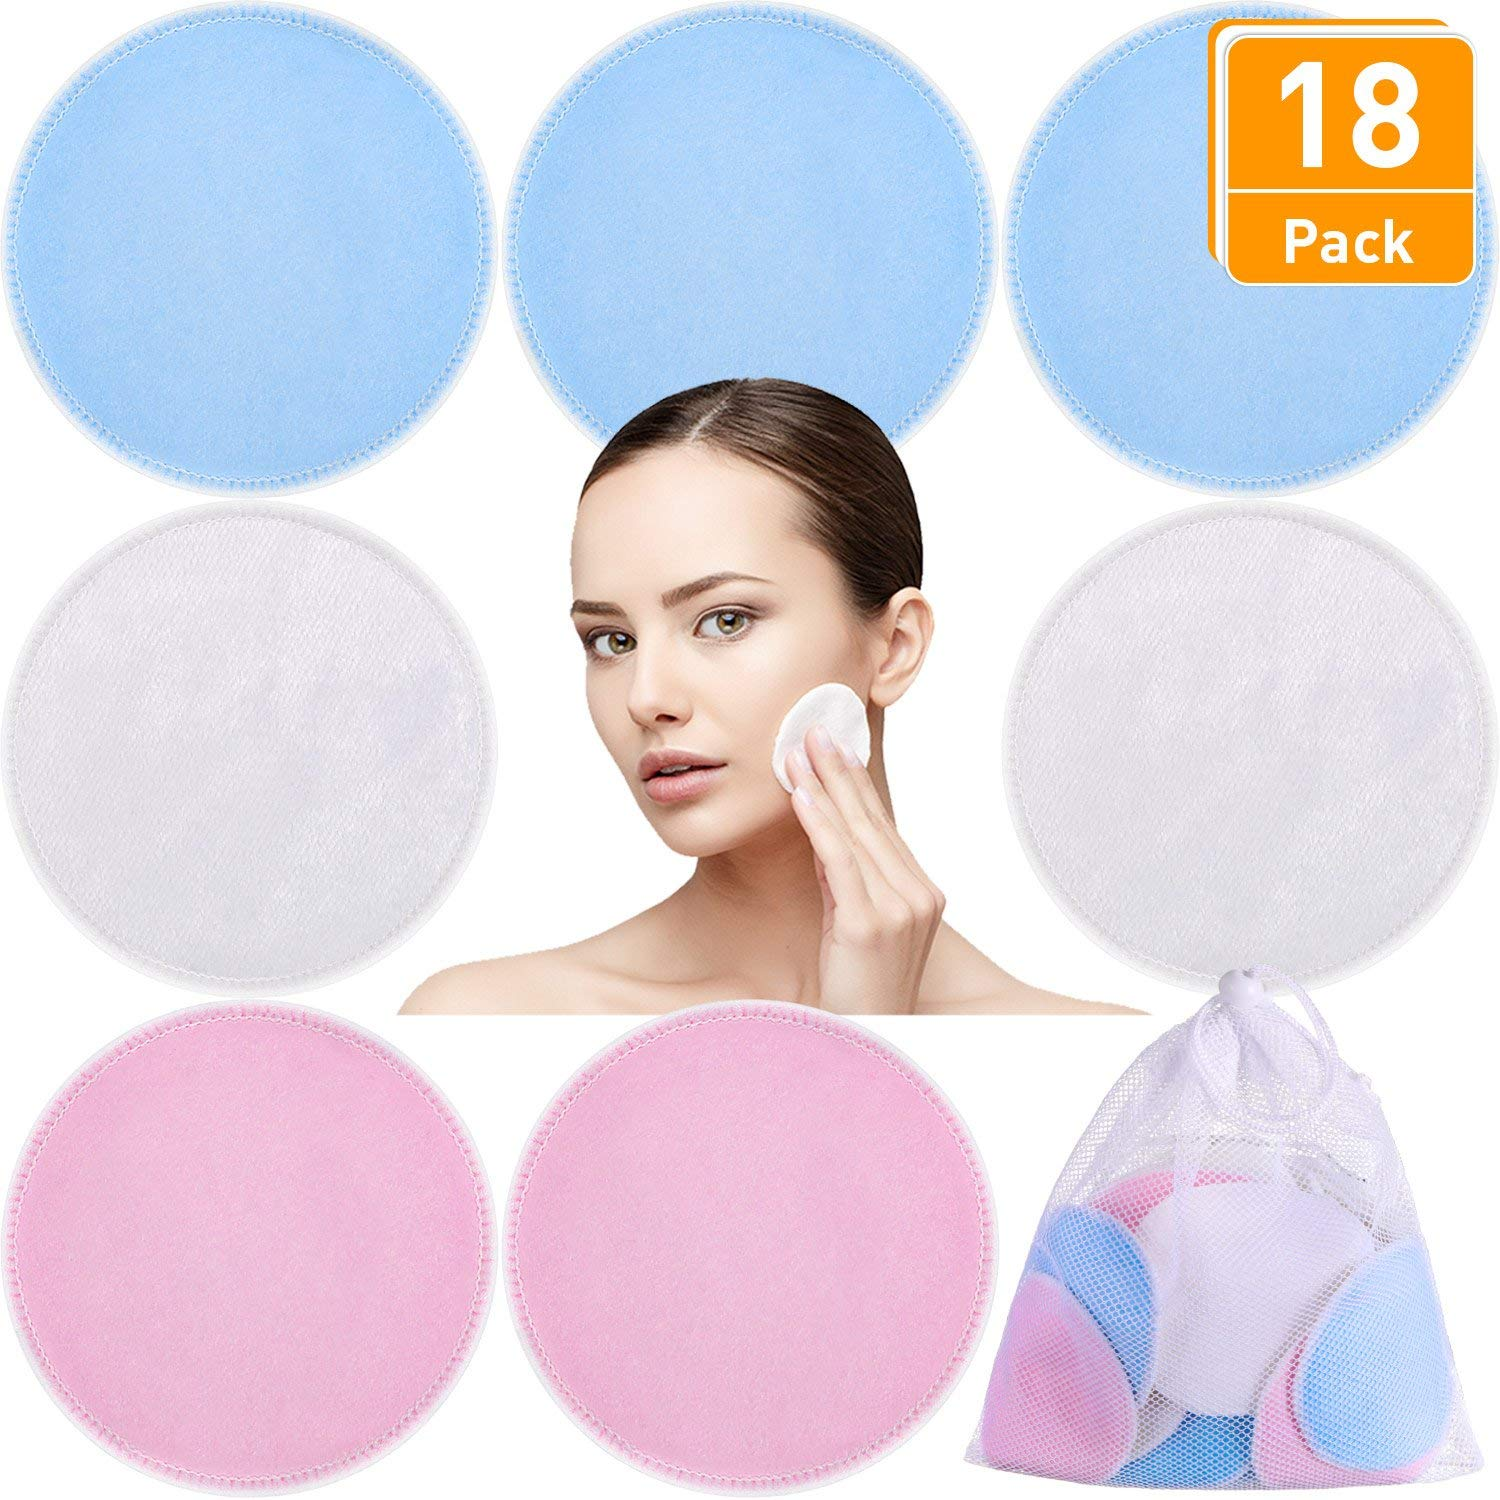 Blulu 18 Pack 3 Layers Makeup Remover Pads, Washable and Reusable Bamboo Soft Facial Pads, Makeup Remover Cloth Pads for Skin Care with Laundry Bag, 3 Colors